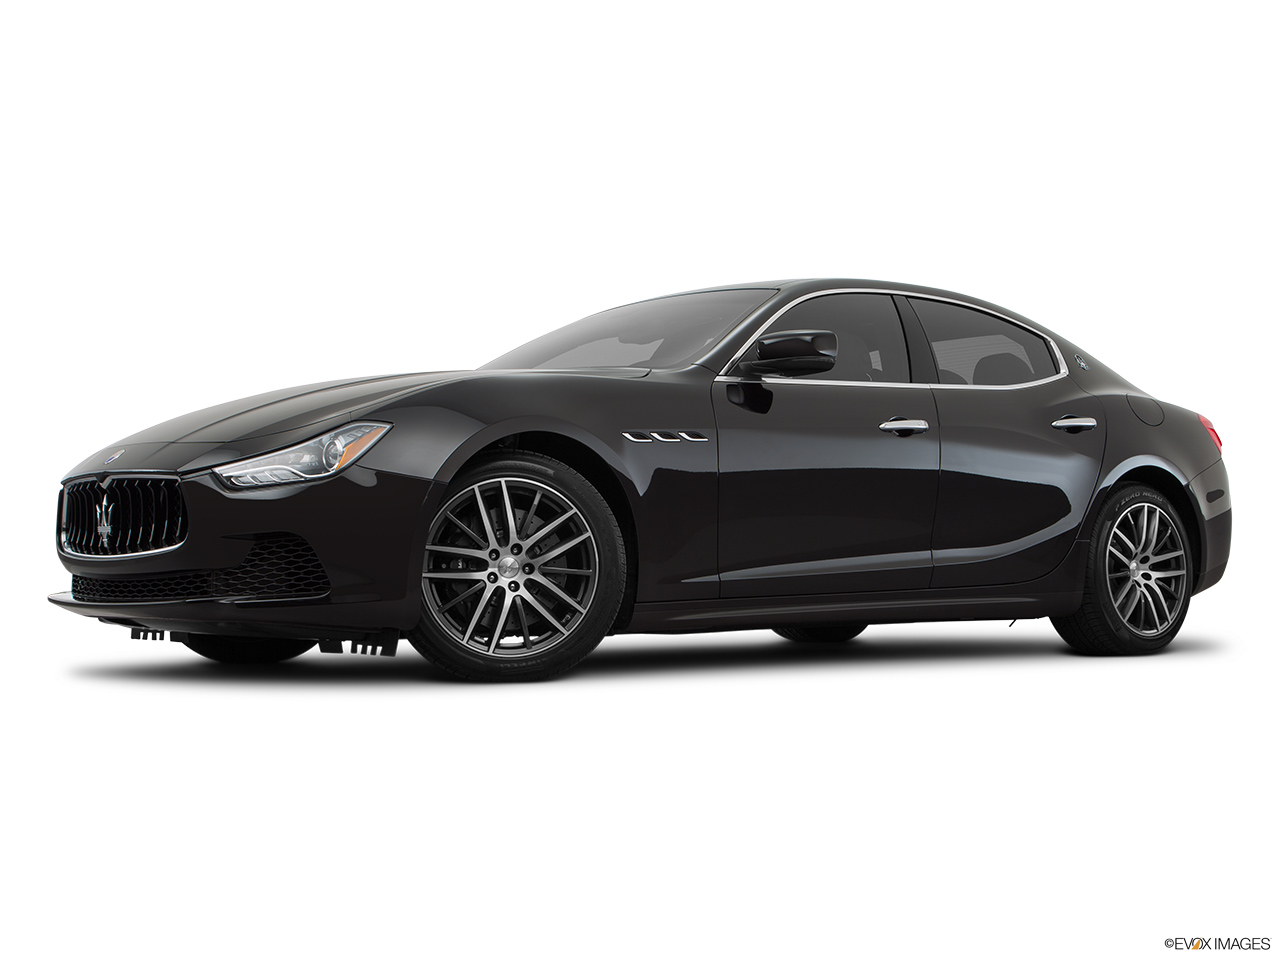 2015 Maserati Ghibli Base Low/wide front 5/8.